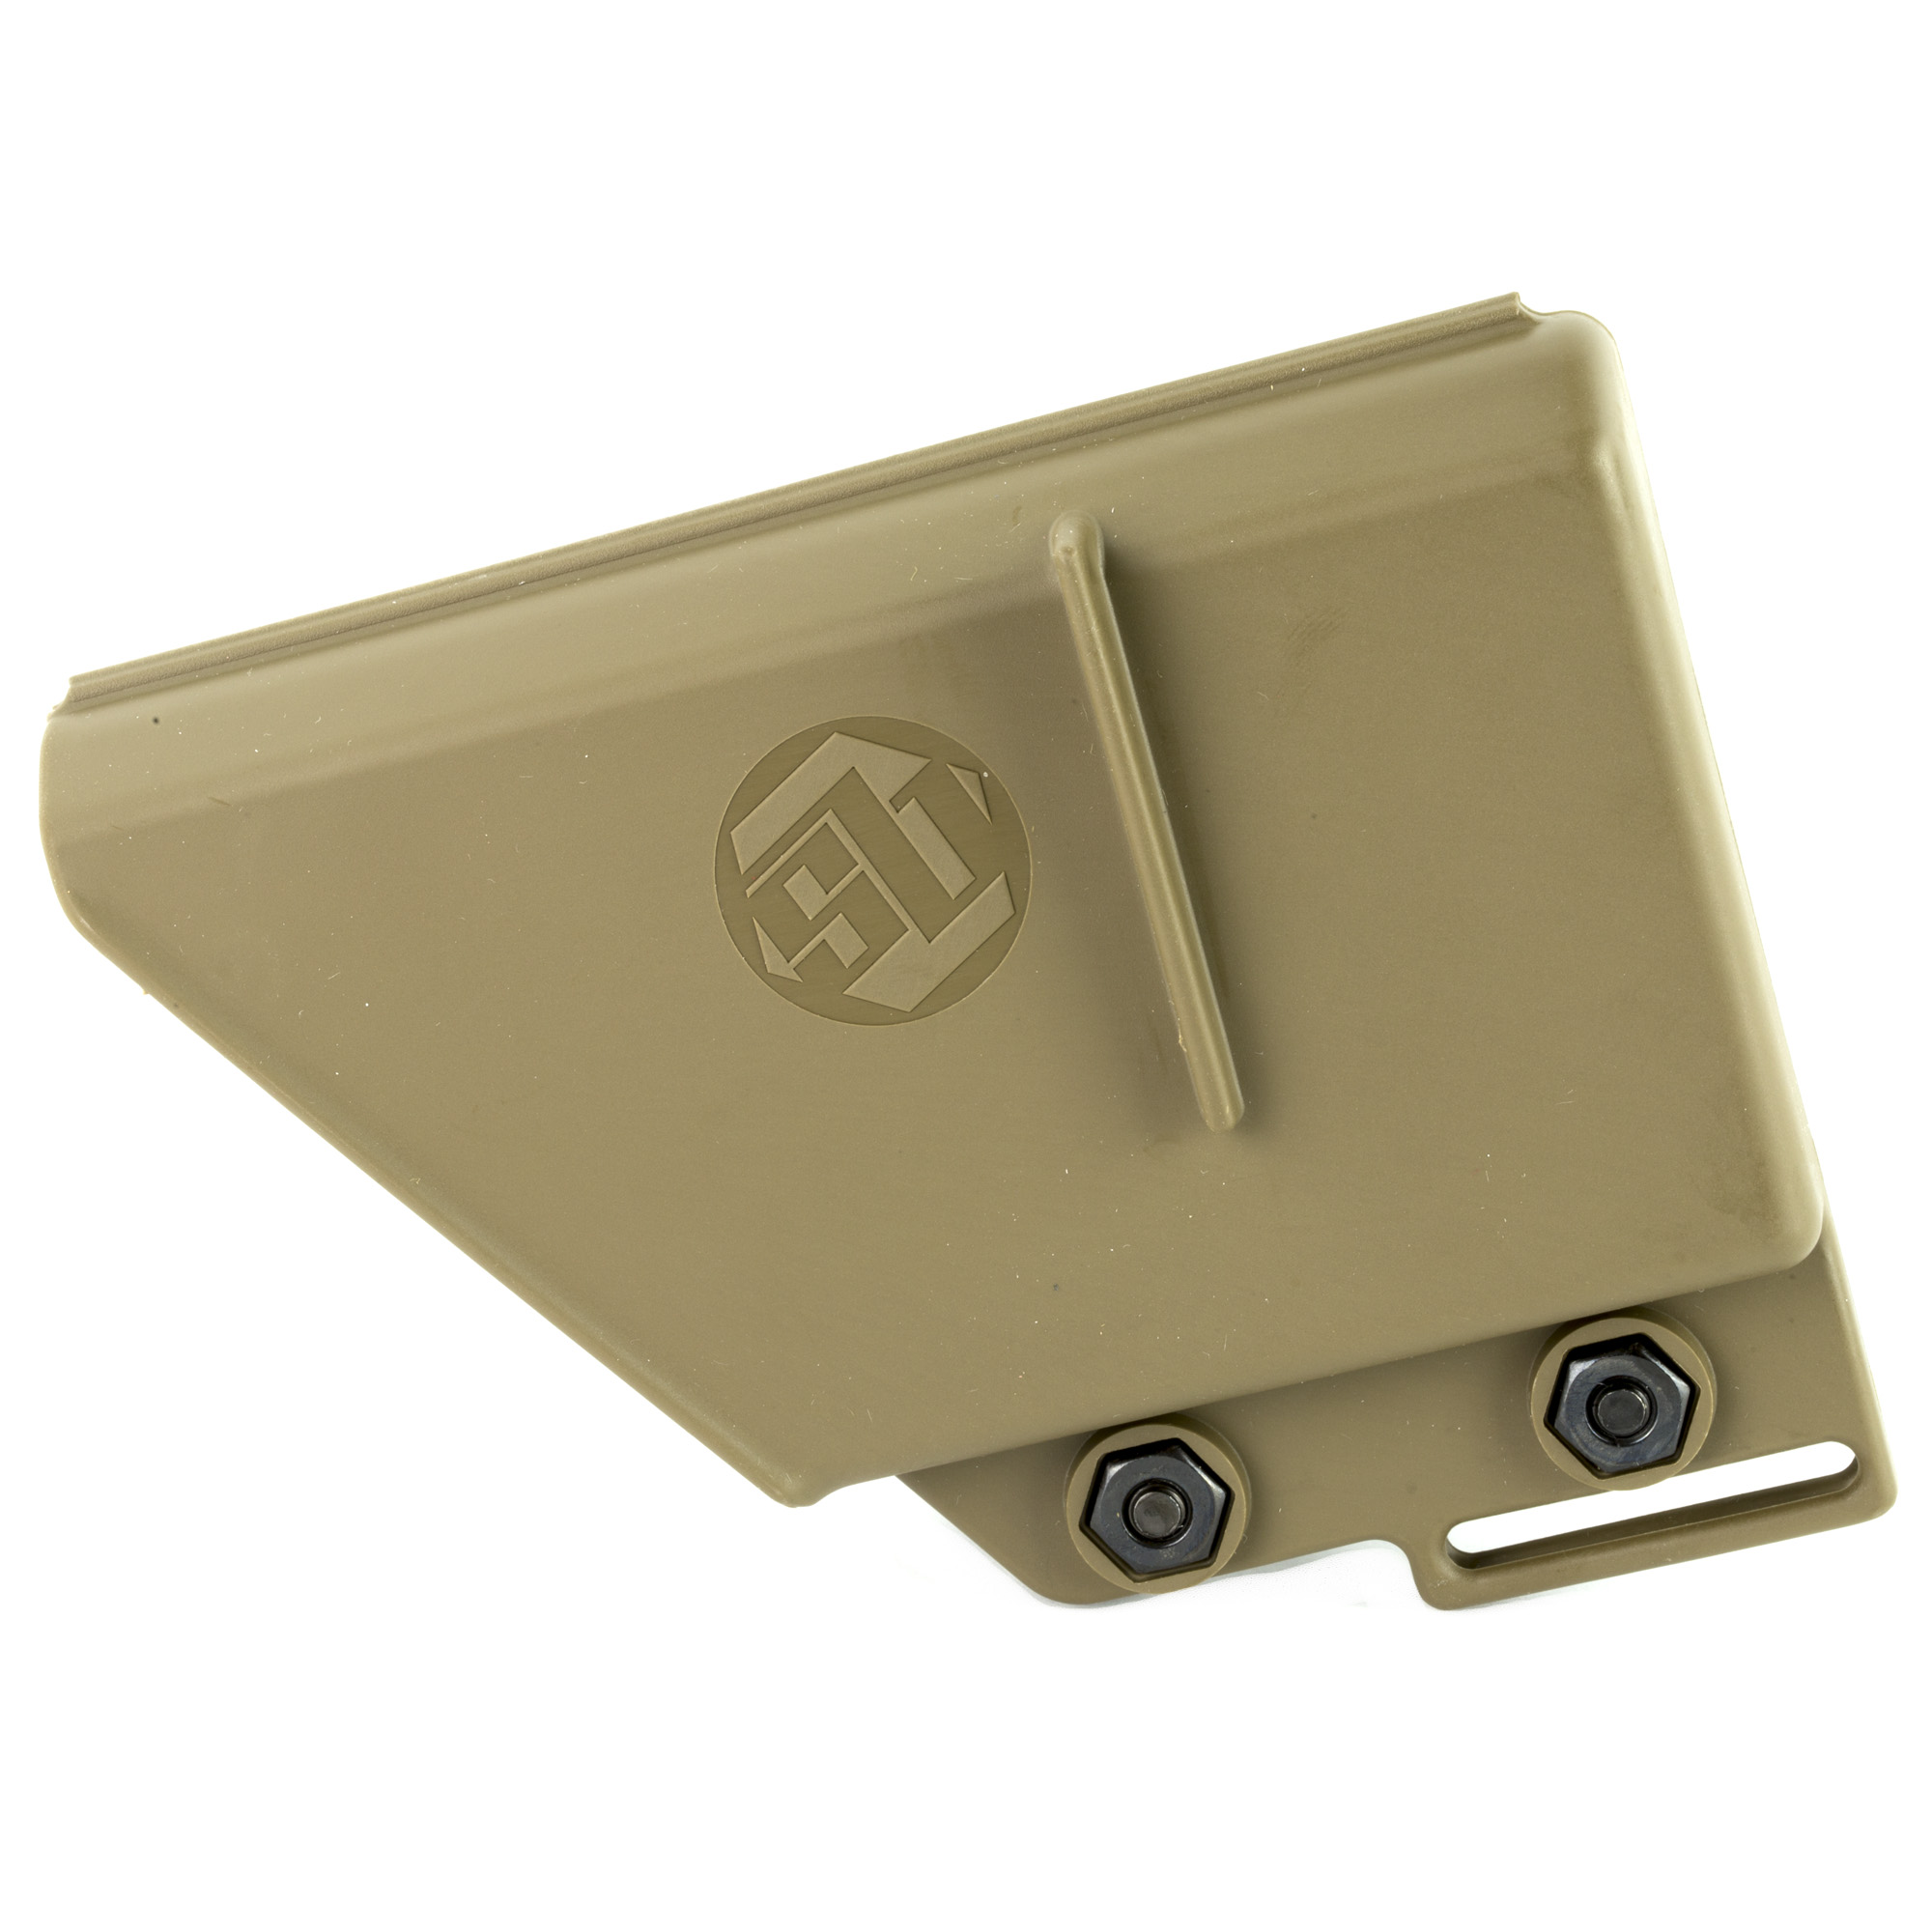 """Designed by SB Tactical as the ideal transport accessory for AR magazines and braced PDW pistols"""" the SB-MAG20 is compatible with most SB Tactical AR braces and fits 5.56 aluminum GI"""" Magpul PMAG"""" and Lancer L5AWM 20 round magazines."""